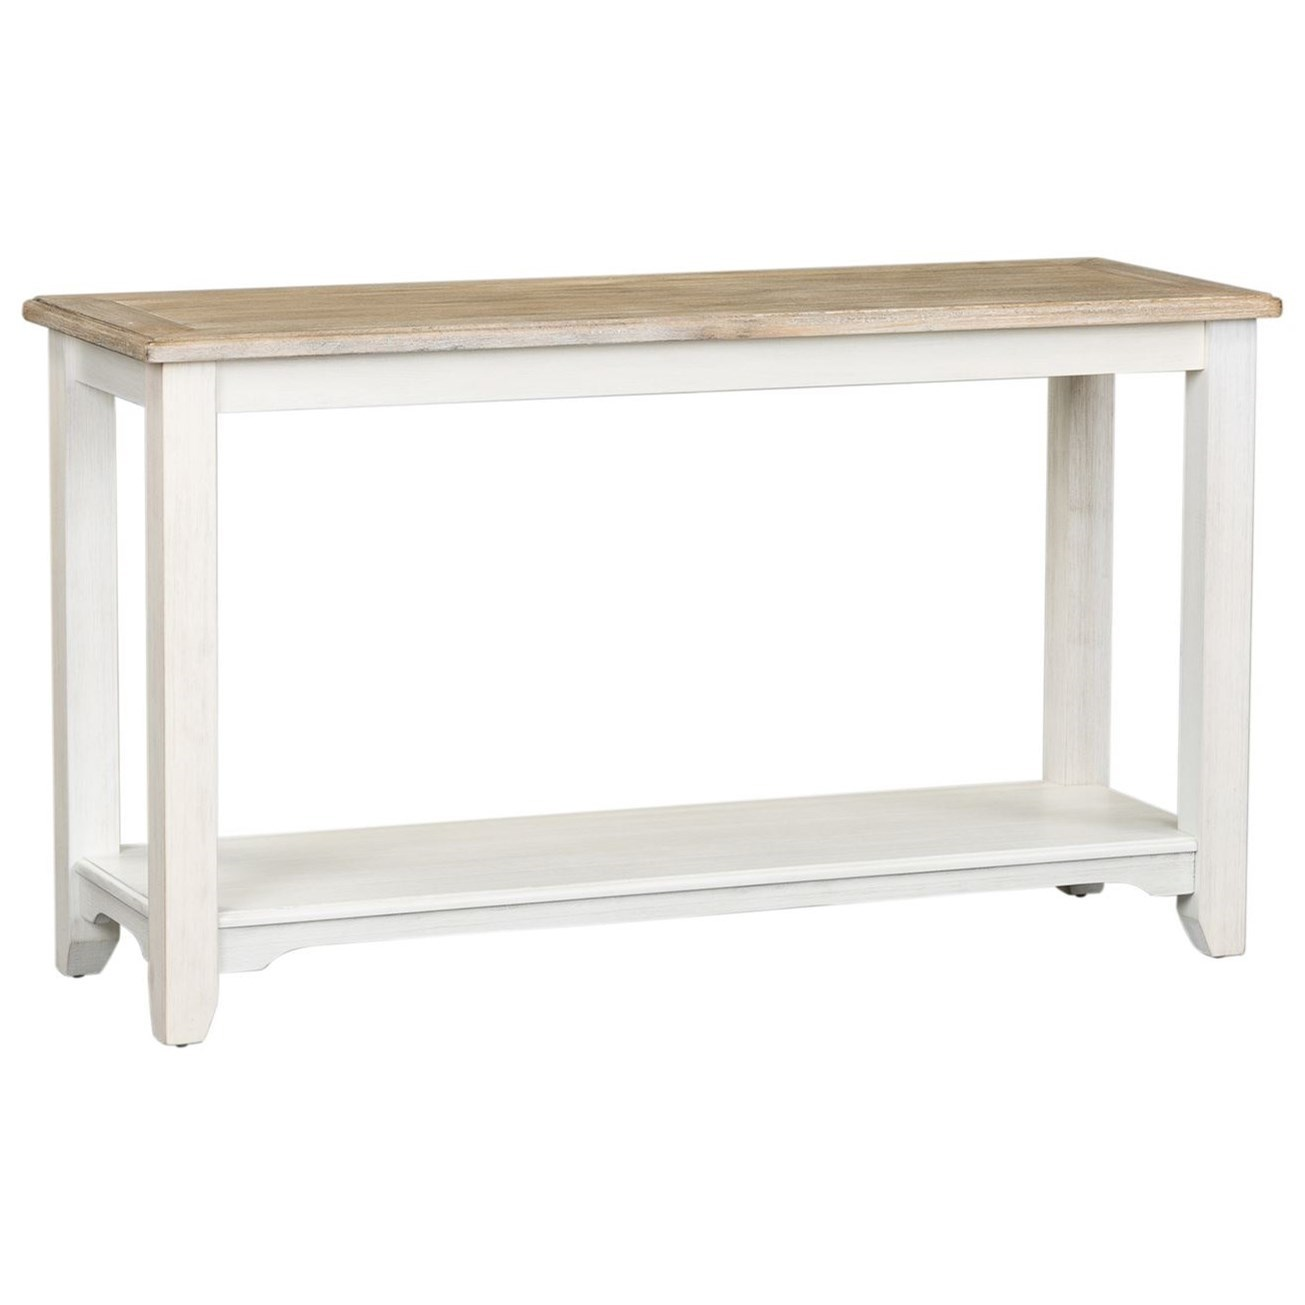 Cottage Style Two-Toned Sofa Table with Shelf